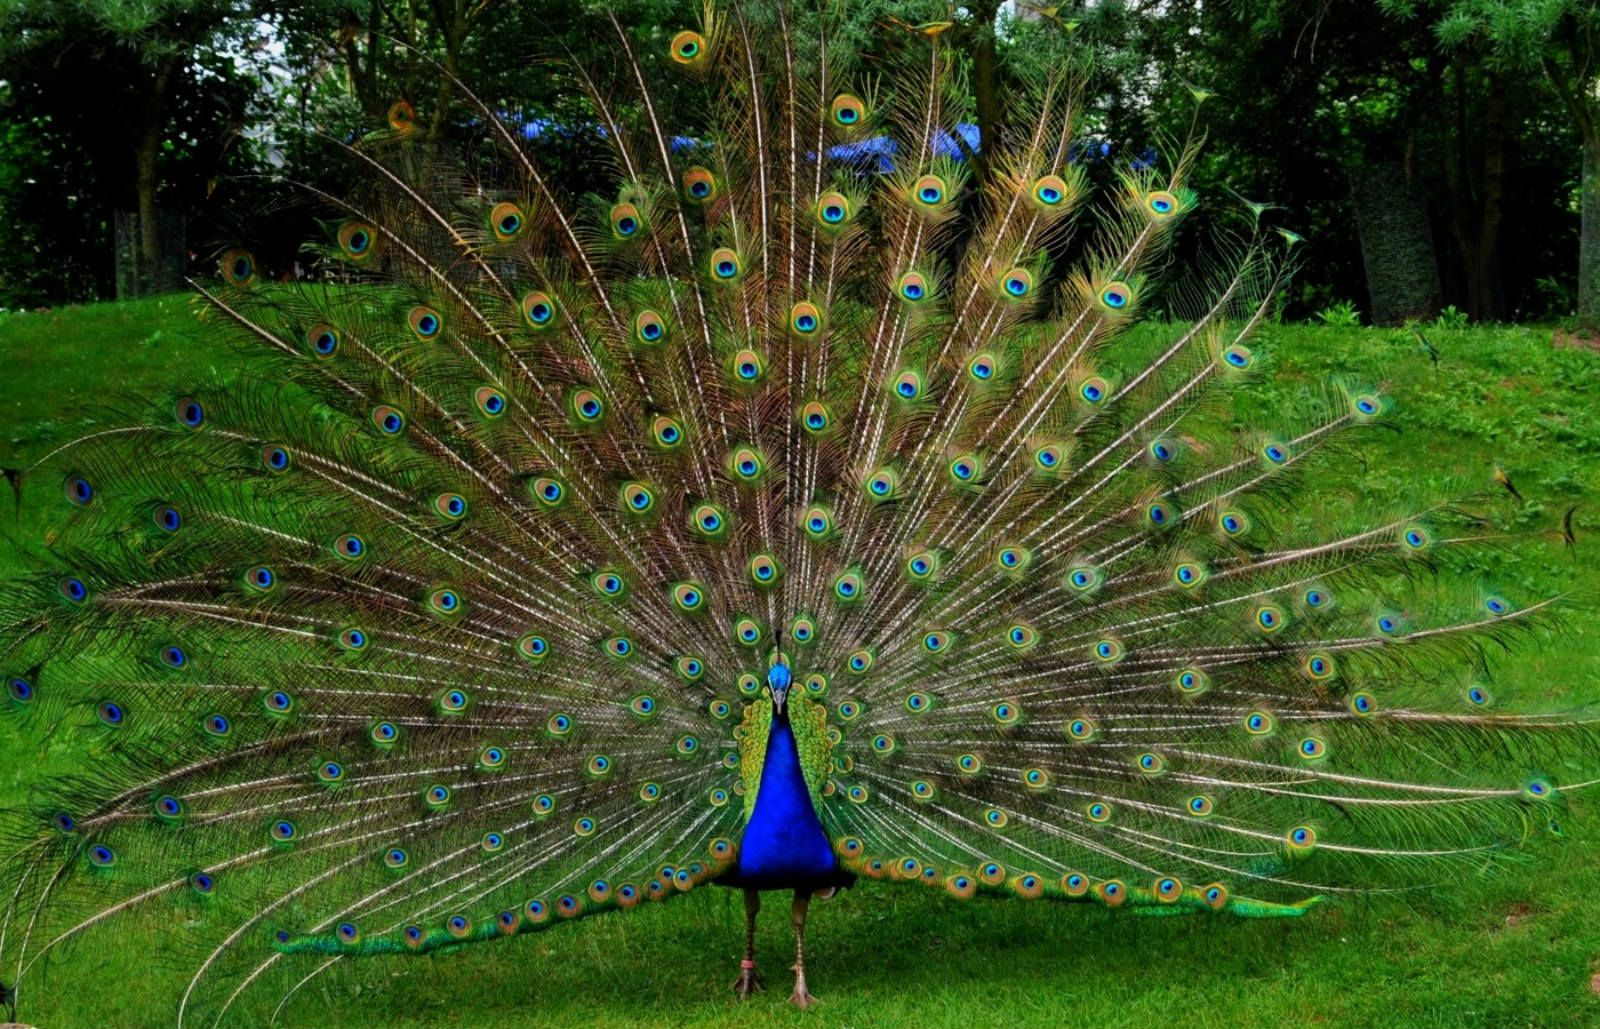 Top Most Beautiful And Dreamy Places Wallpapers In Hd Mother Peacock Images Animal Wallpaper Peacock Wallpaper